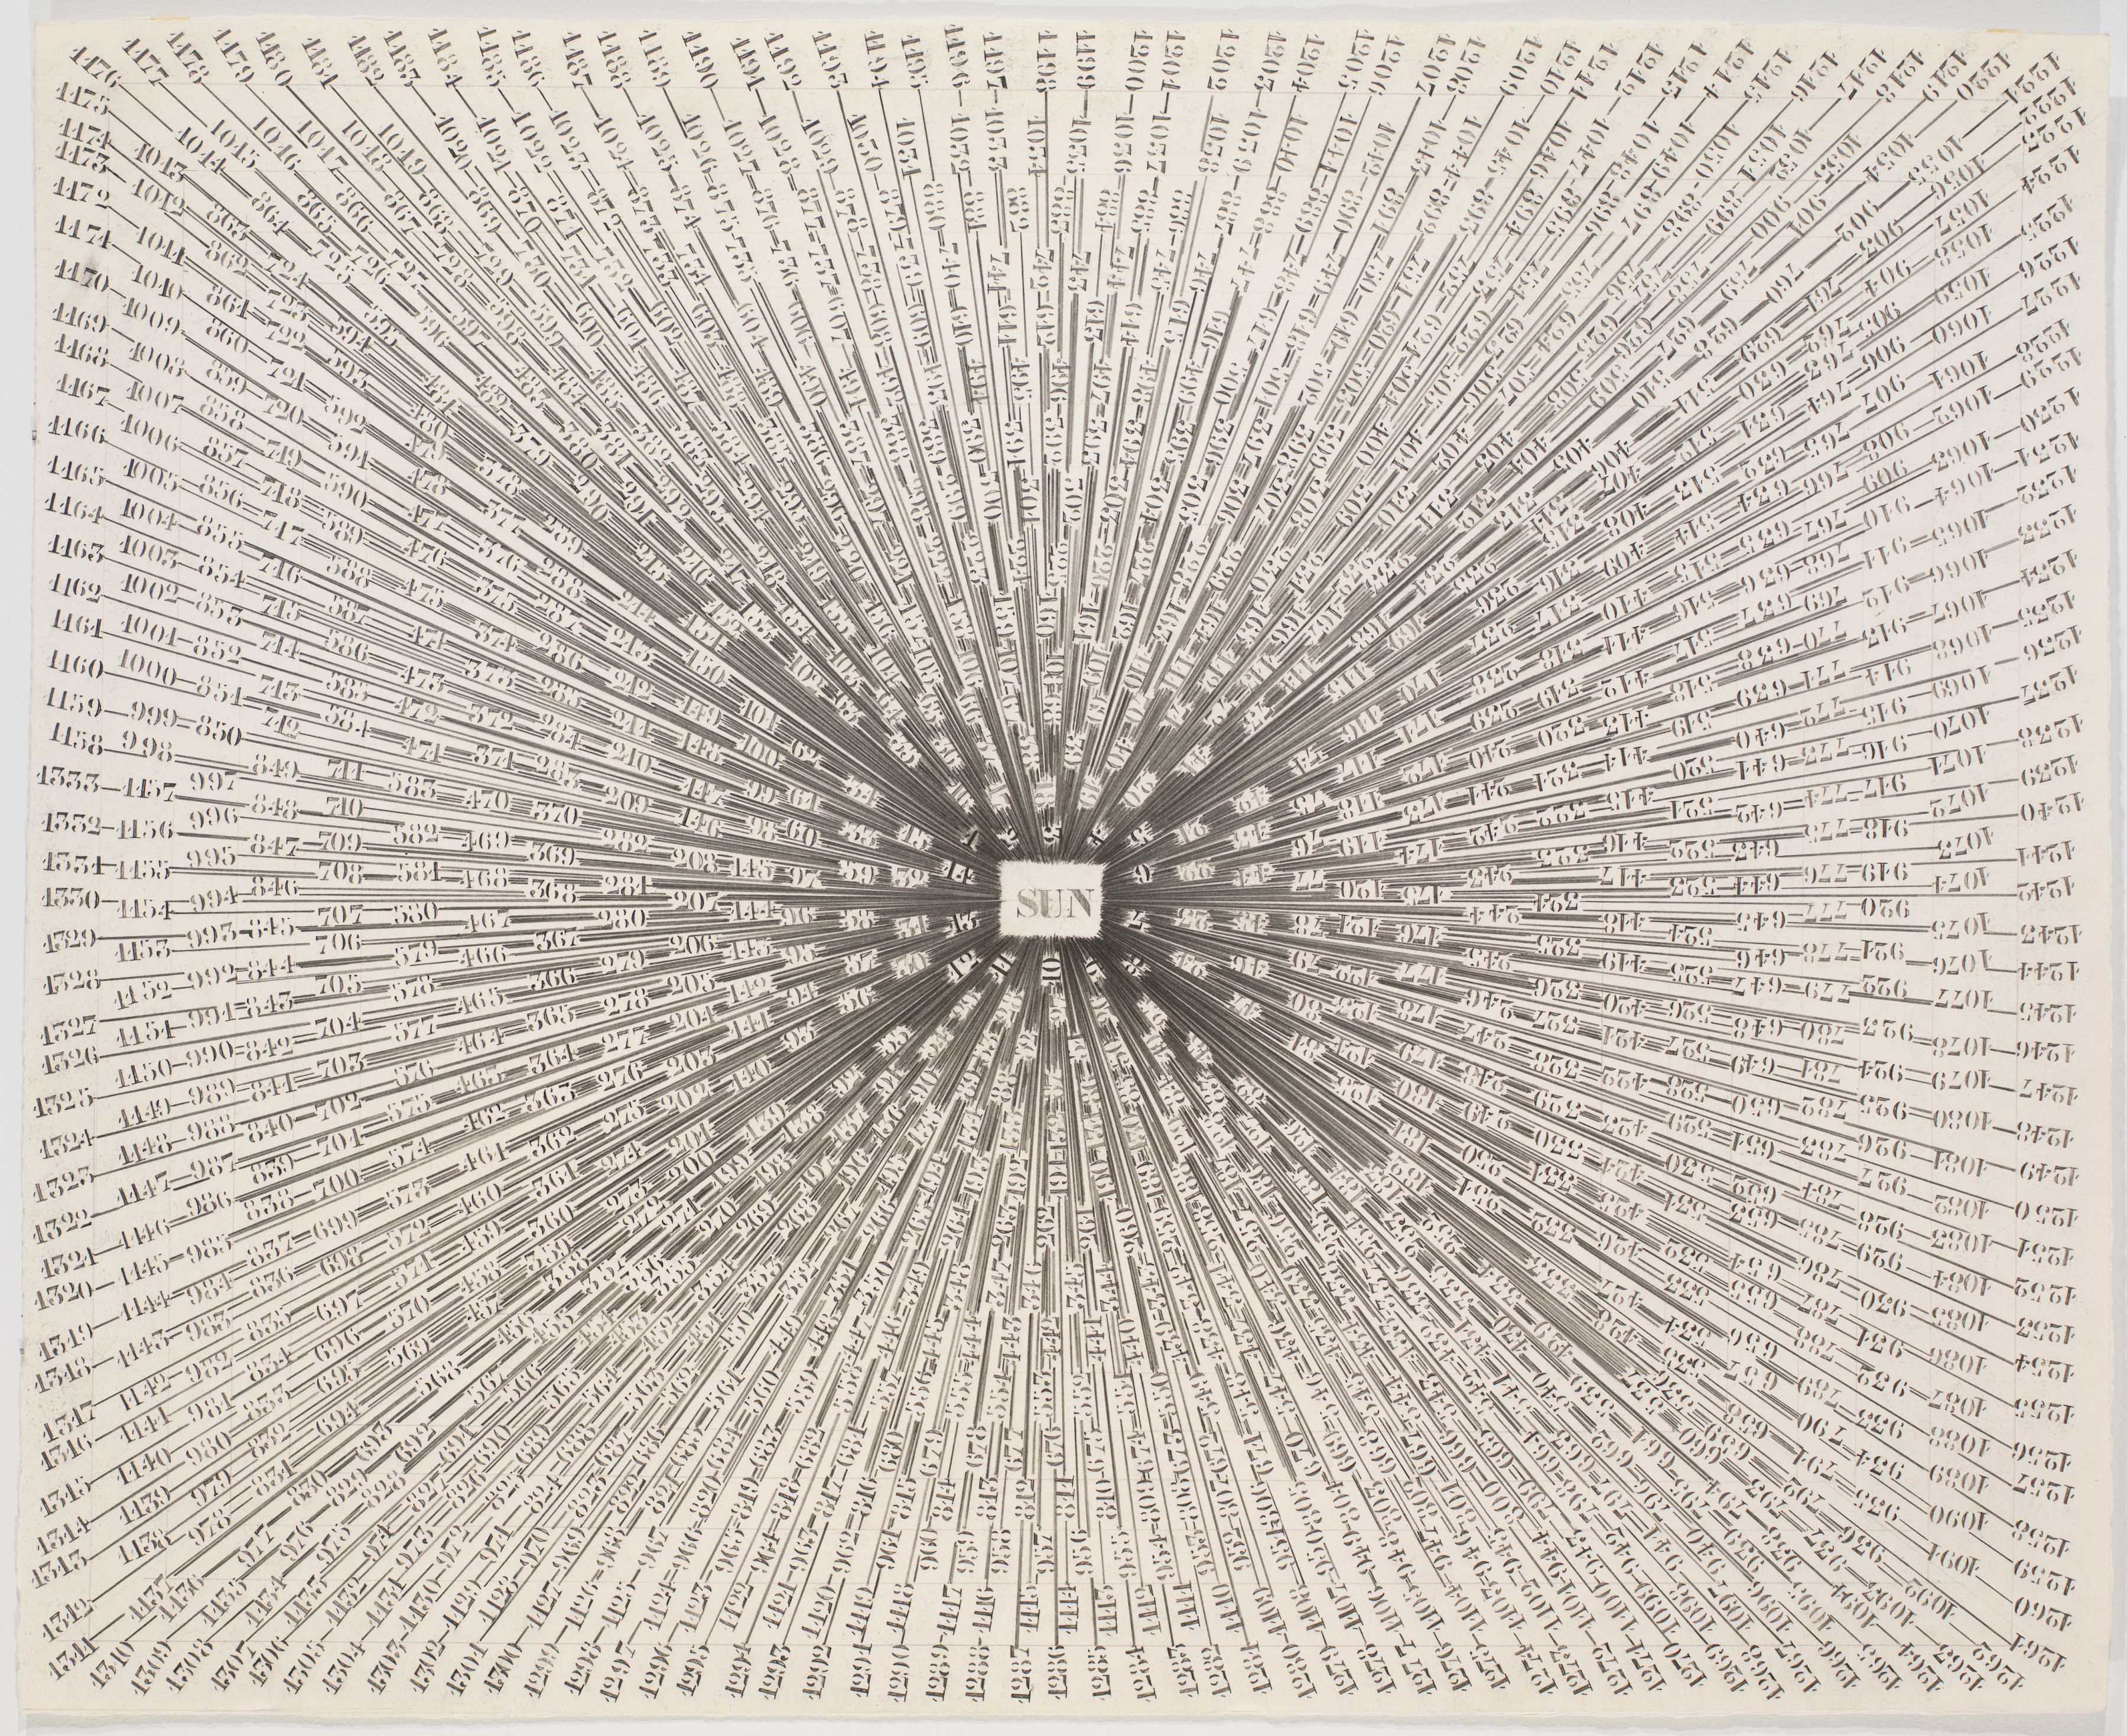 Luis Camnitzer, Infinite Rays of The Sun, 1975-1978